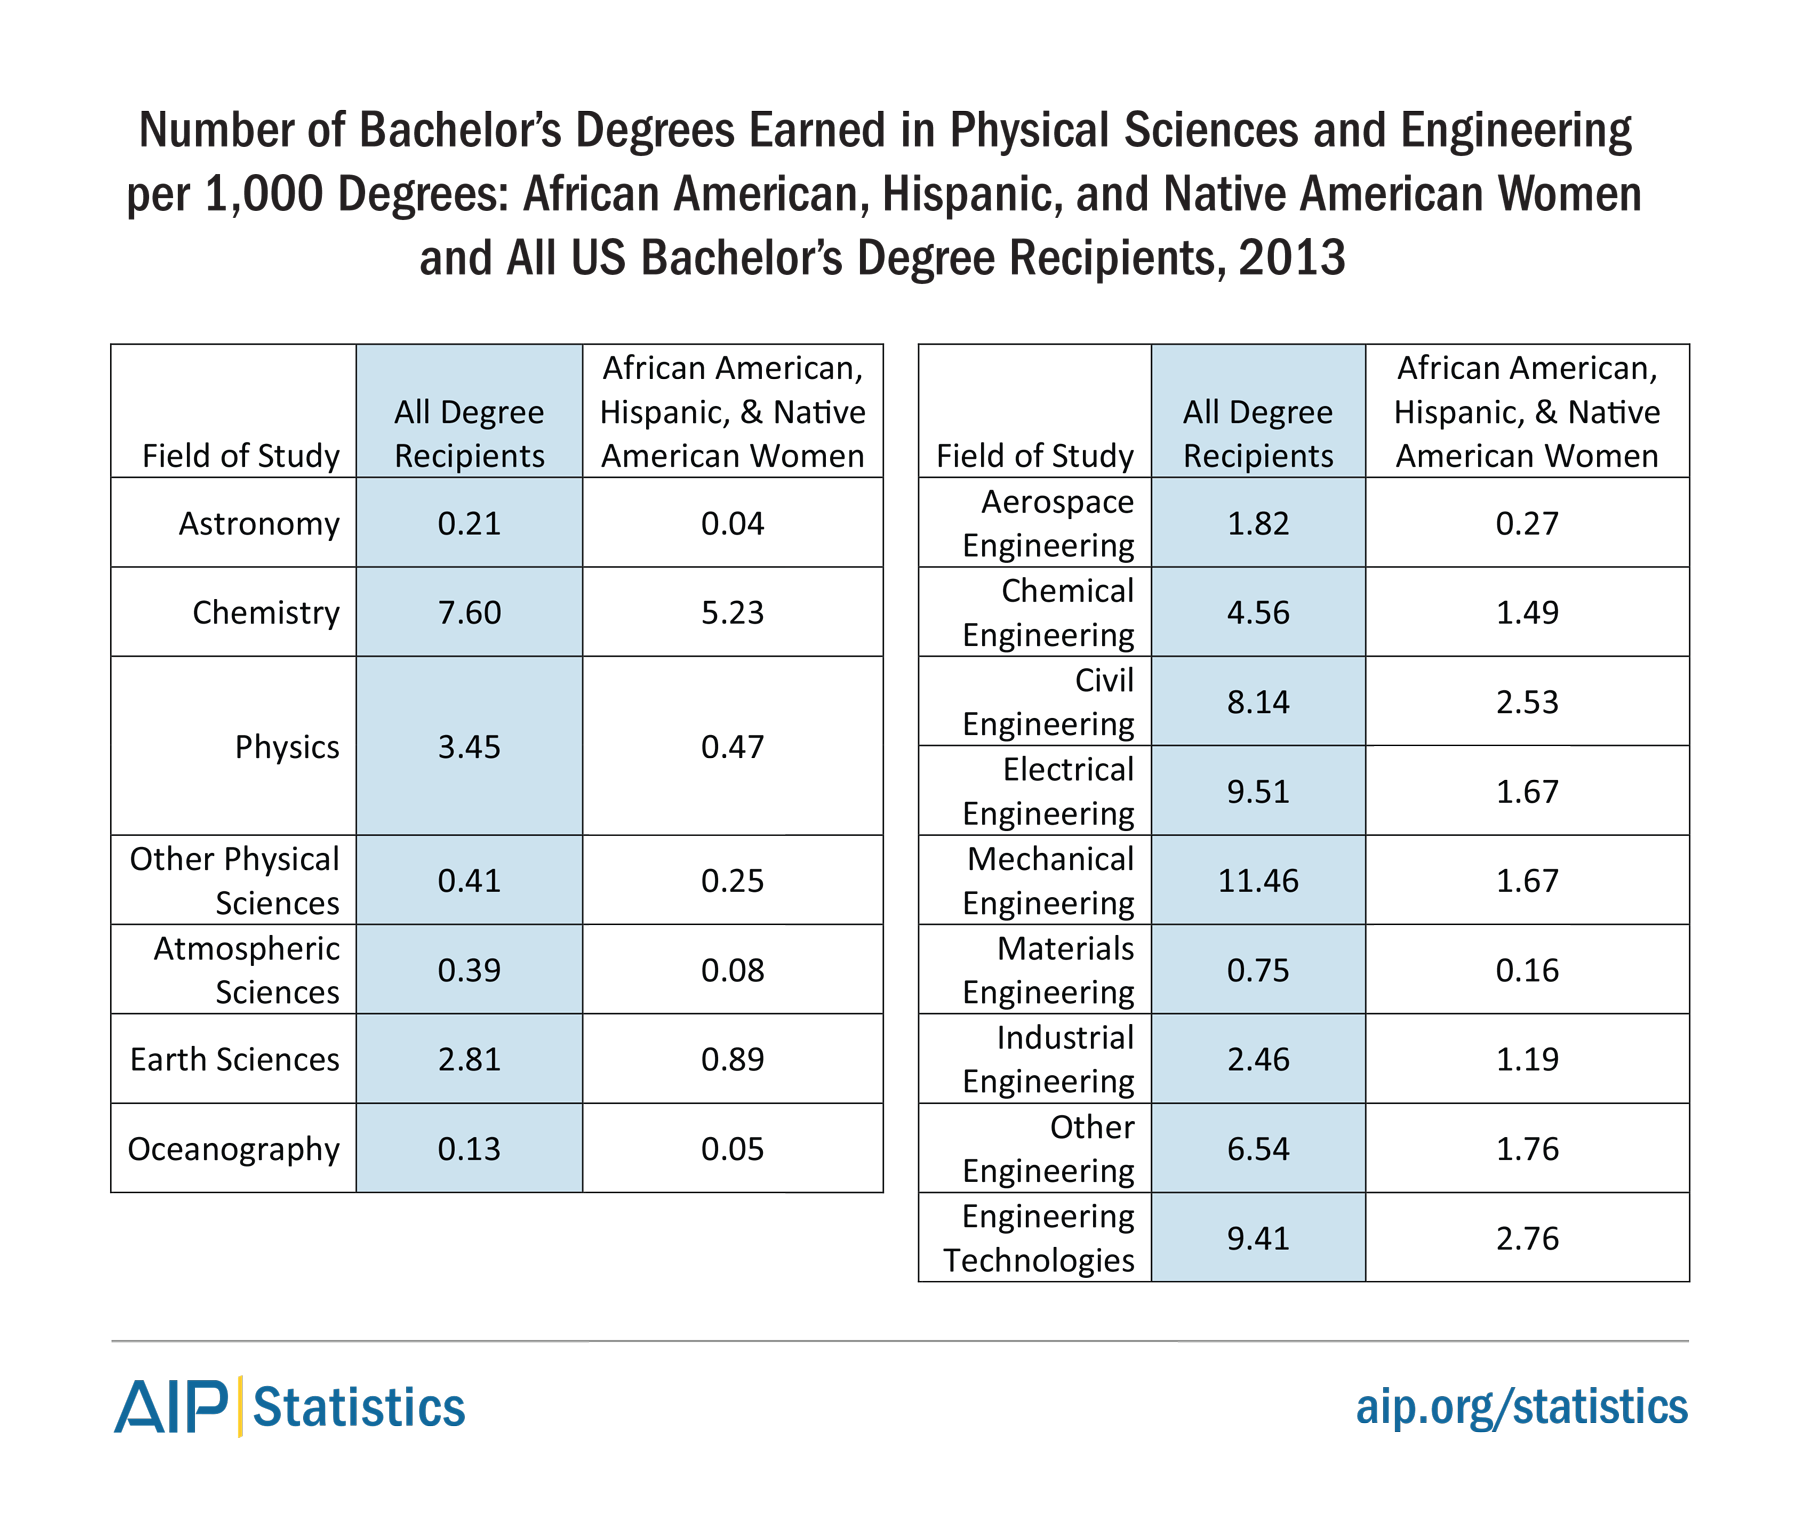 Number of Bachelor's Degrees Earned in Physical Sciences and Engineering per 1,000 Degrees: African American, Hispanic, and Native American Women and All US Bachelor's Degree Recipients, 2013